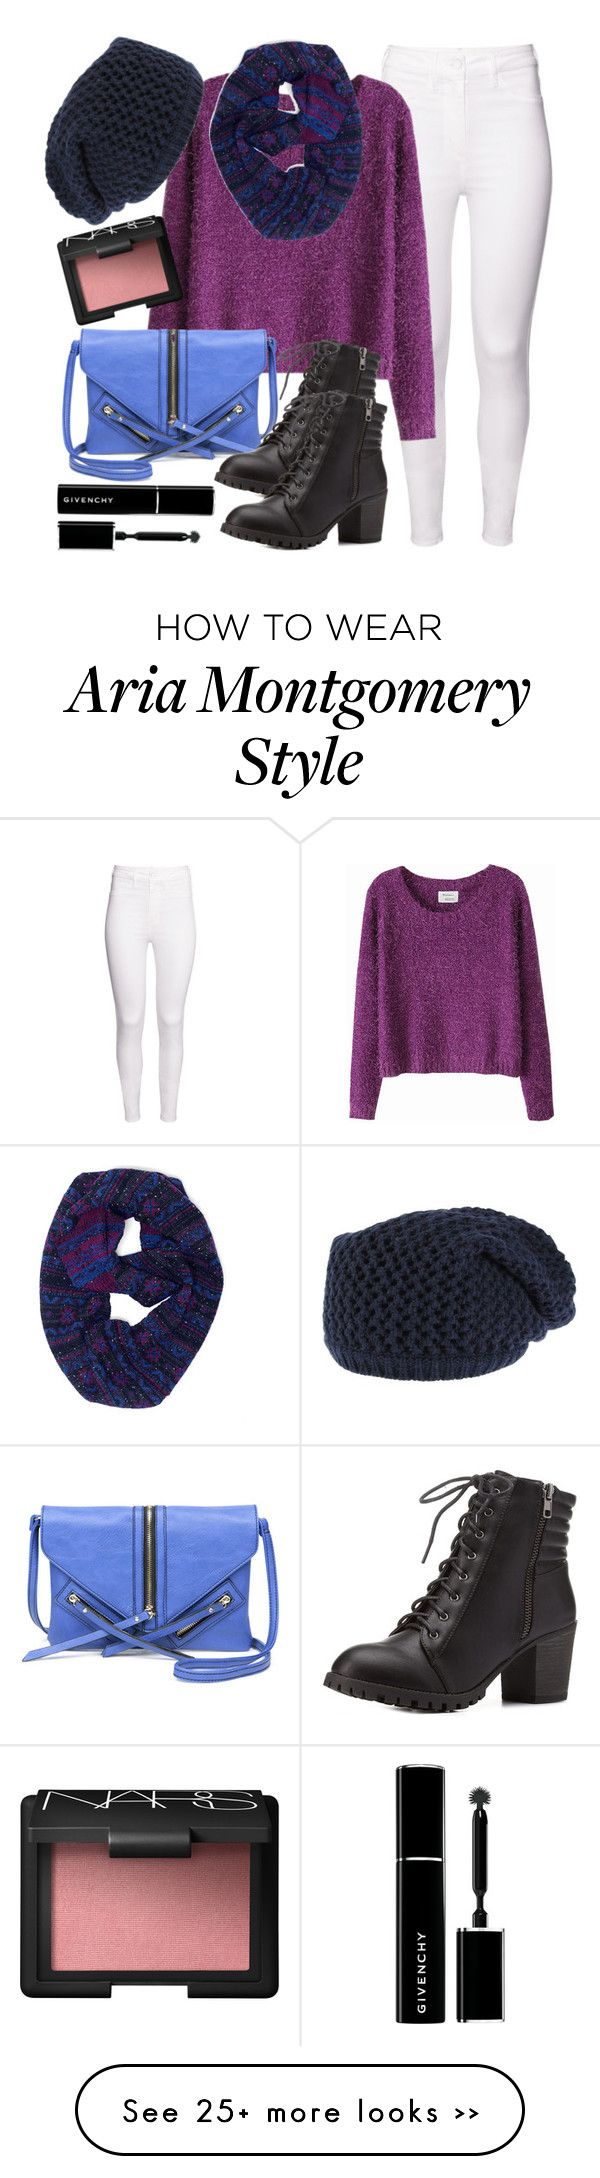 """""""Aria Montgomery inspired outfit with a navy beanie"""" by liarsstyle on Polyvore"""